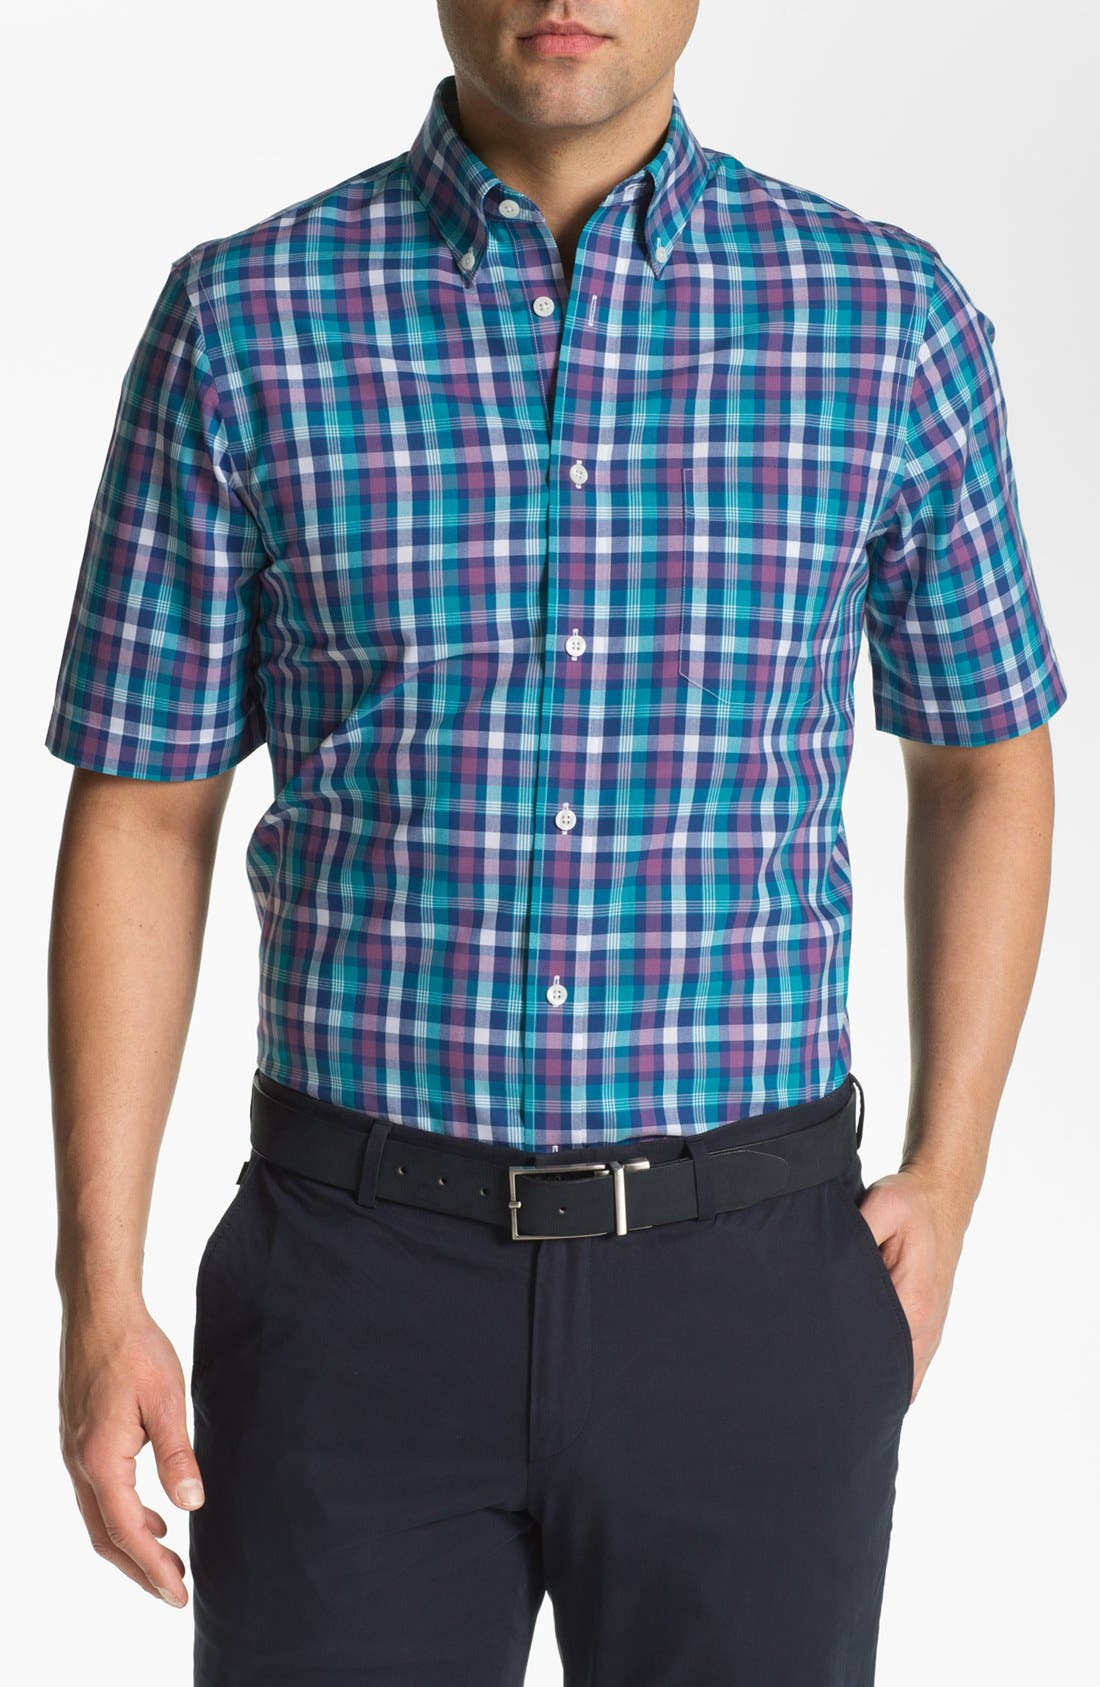 Alternate Image 1 Selected - Nordstrom Short Sleeve Poplin Sport Shirt